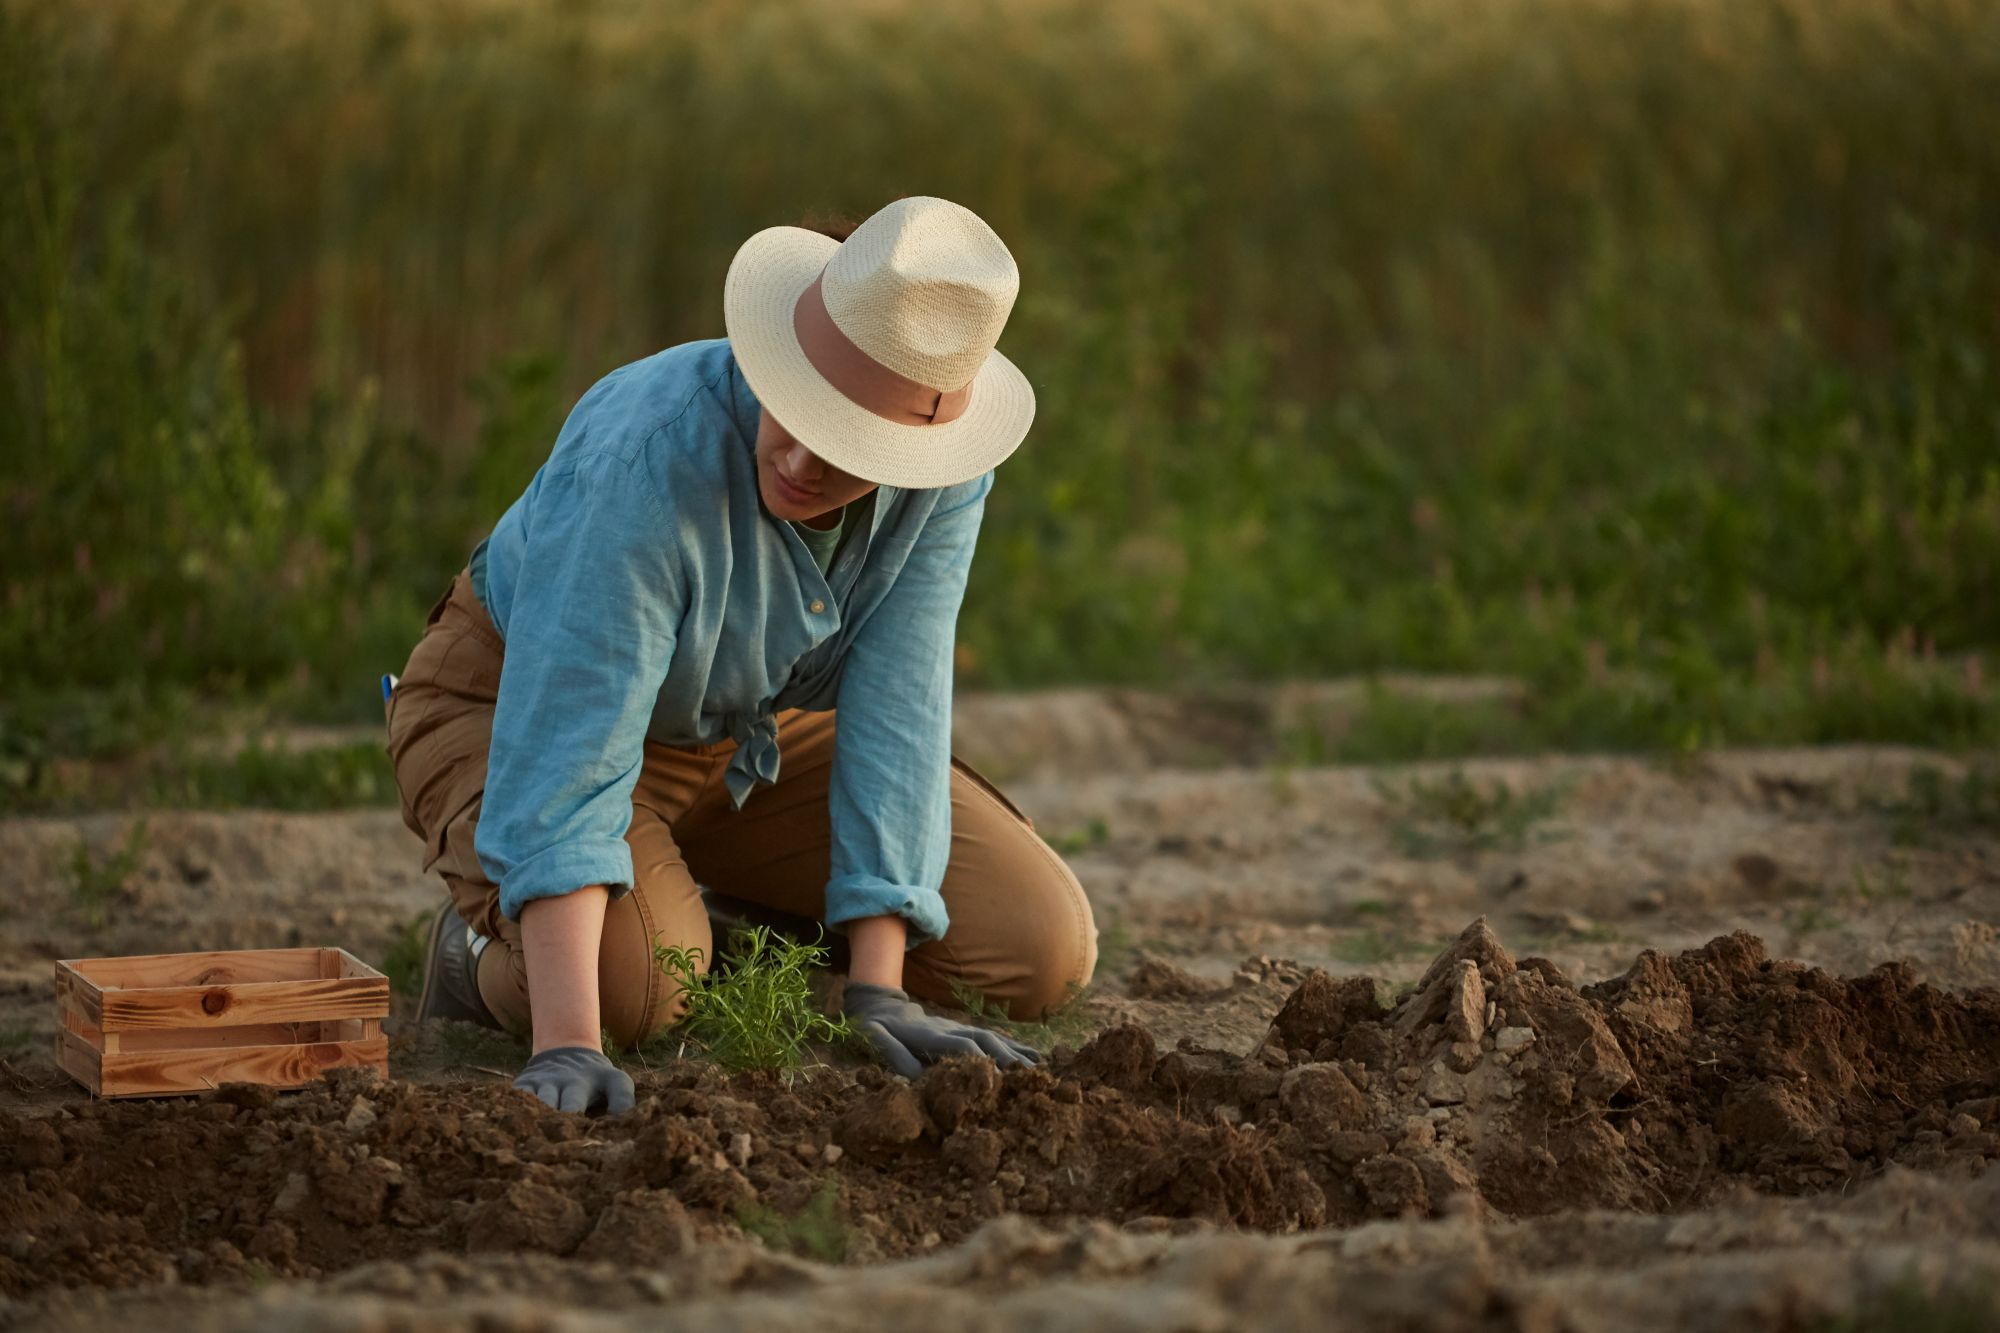 woman-working-in-field-QXFWLG9